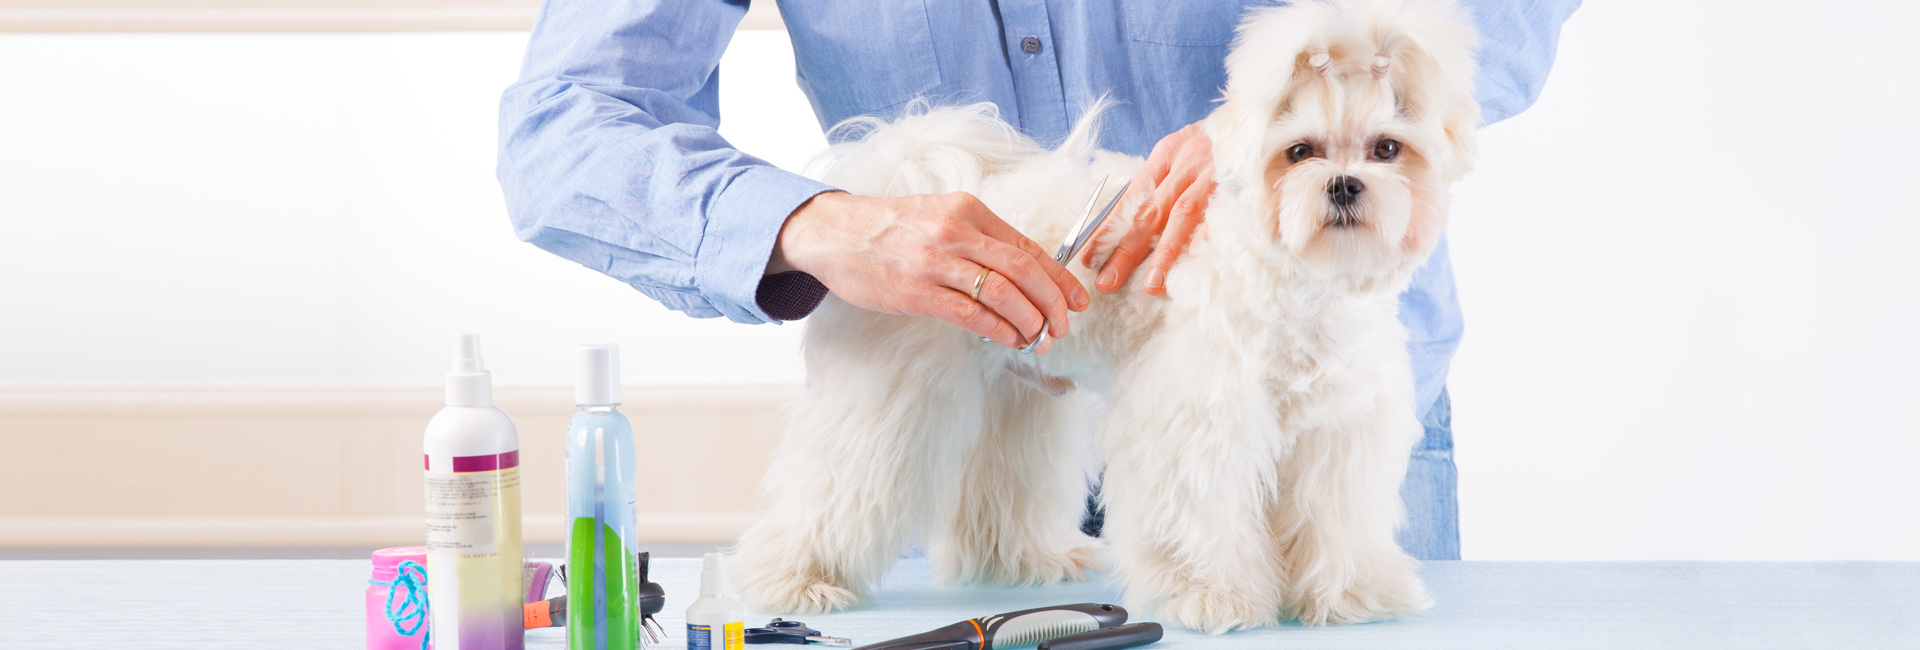 A Man Grooming a Dog